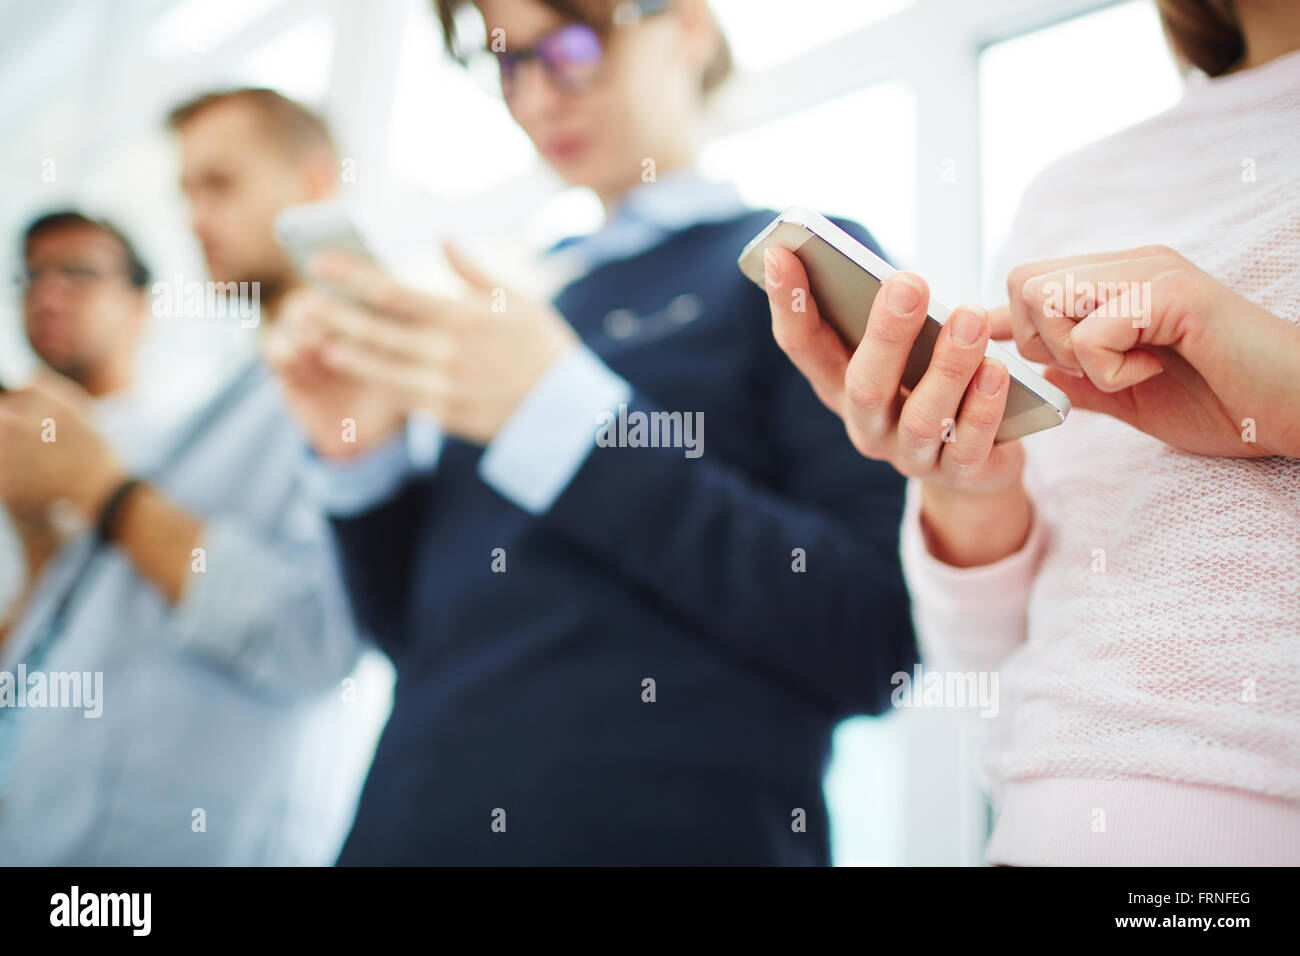 Using cellphones - Stock Image